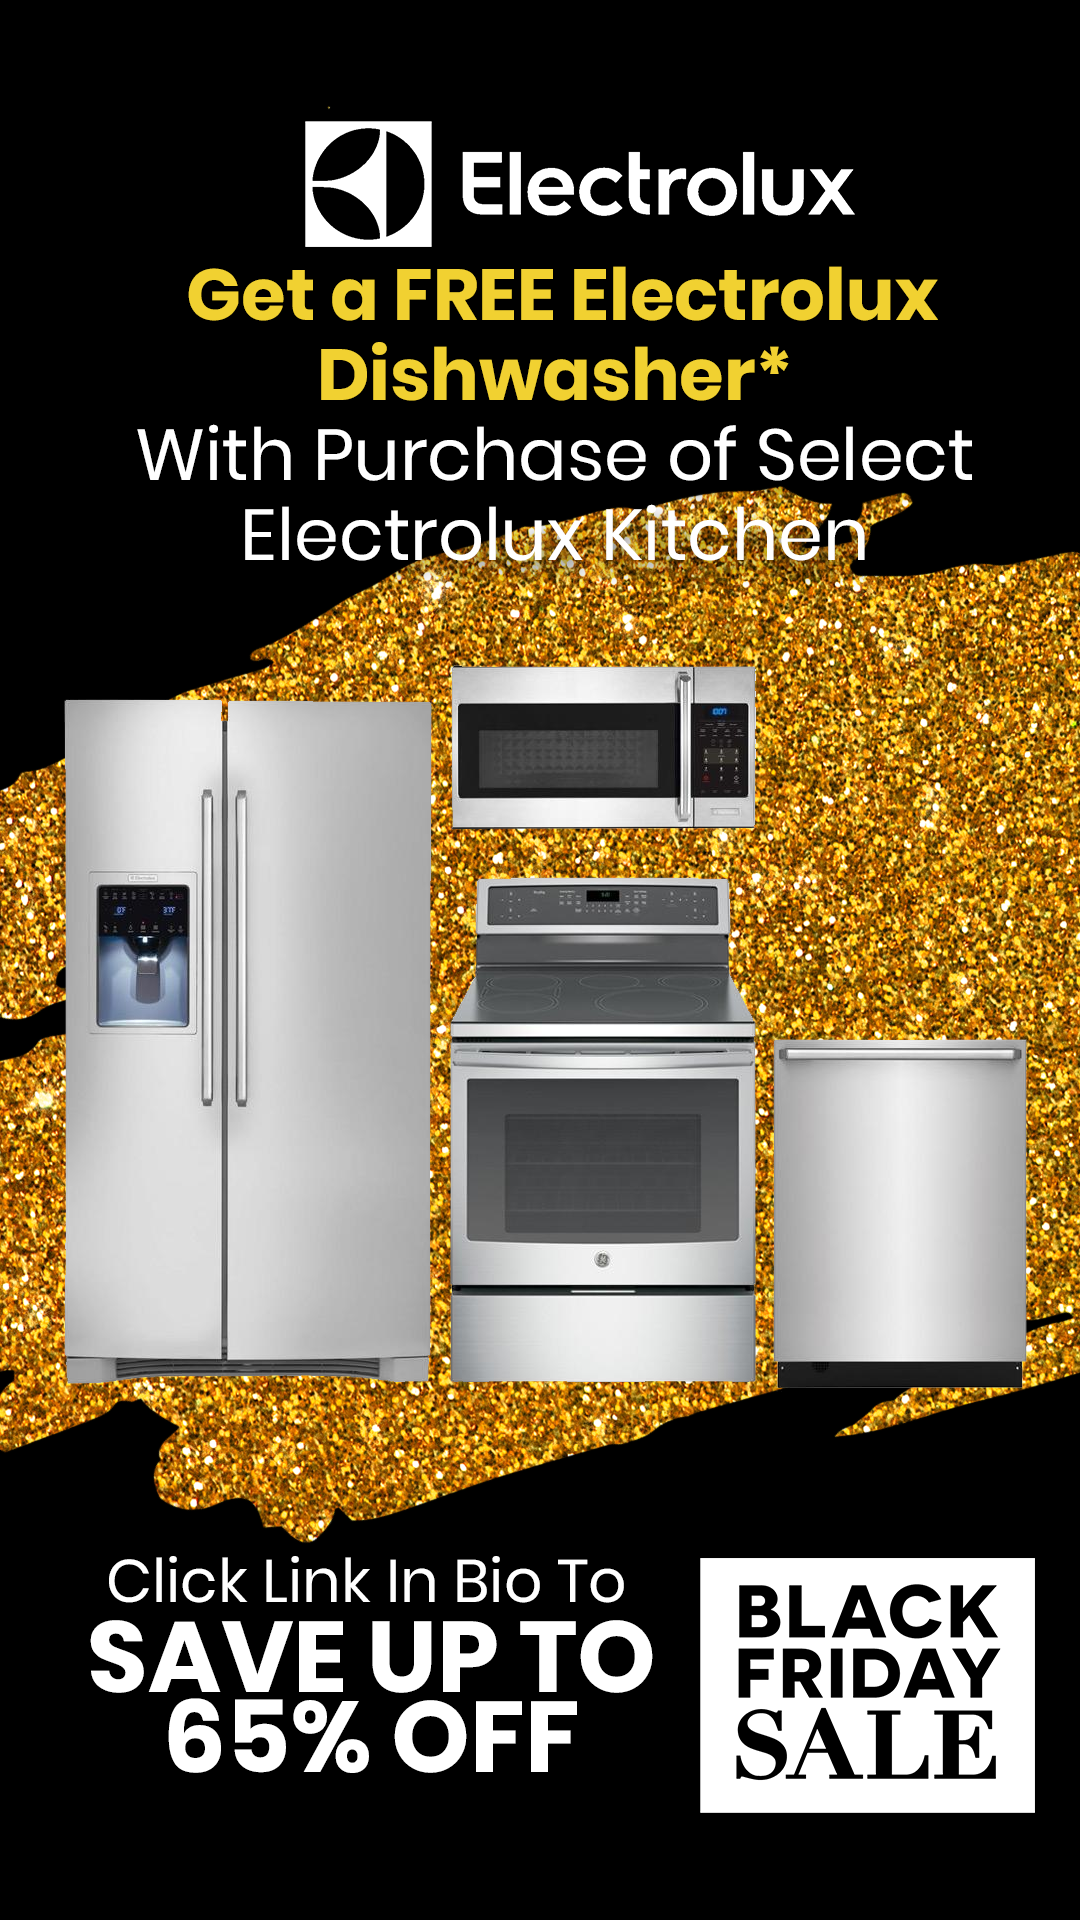 Appliances Packages Sale Get A Free Electrolux Dishwasher With Purchase Of Select